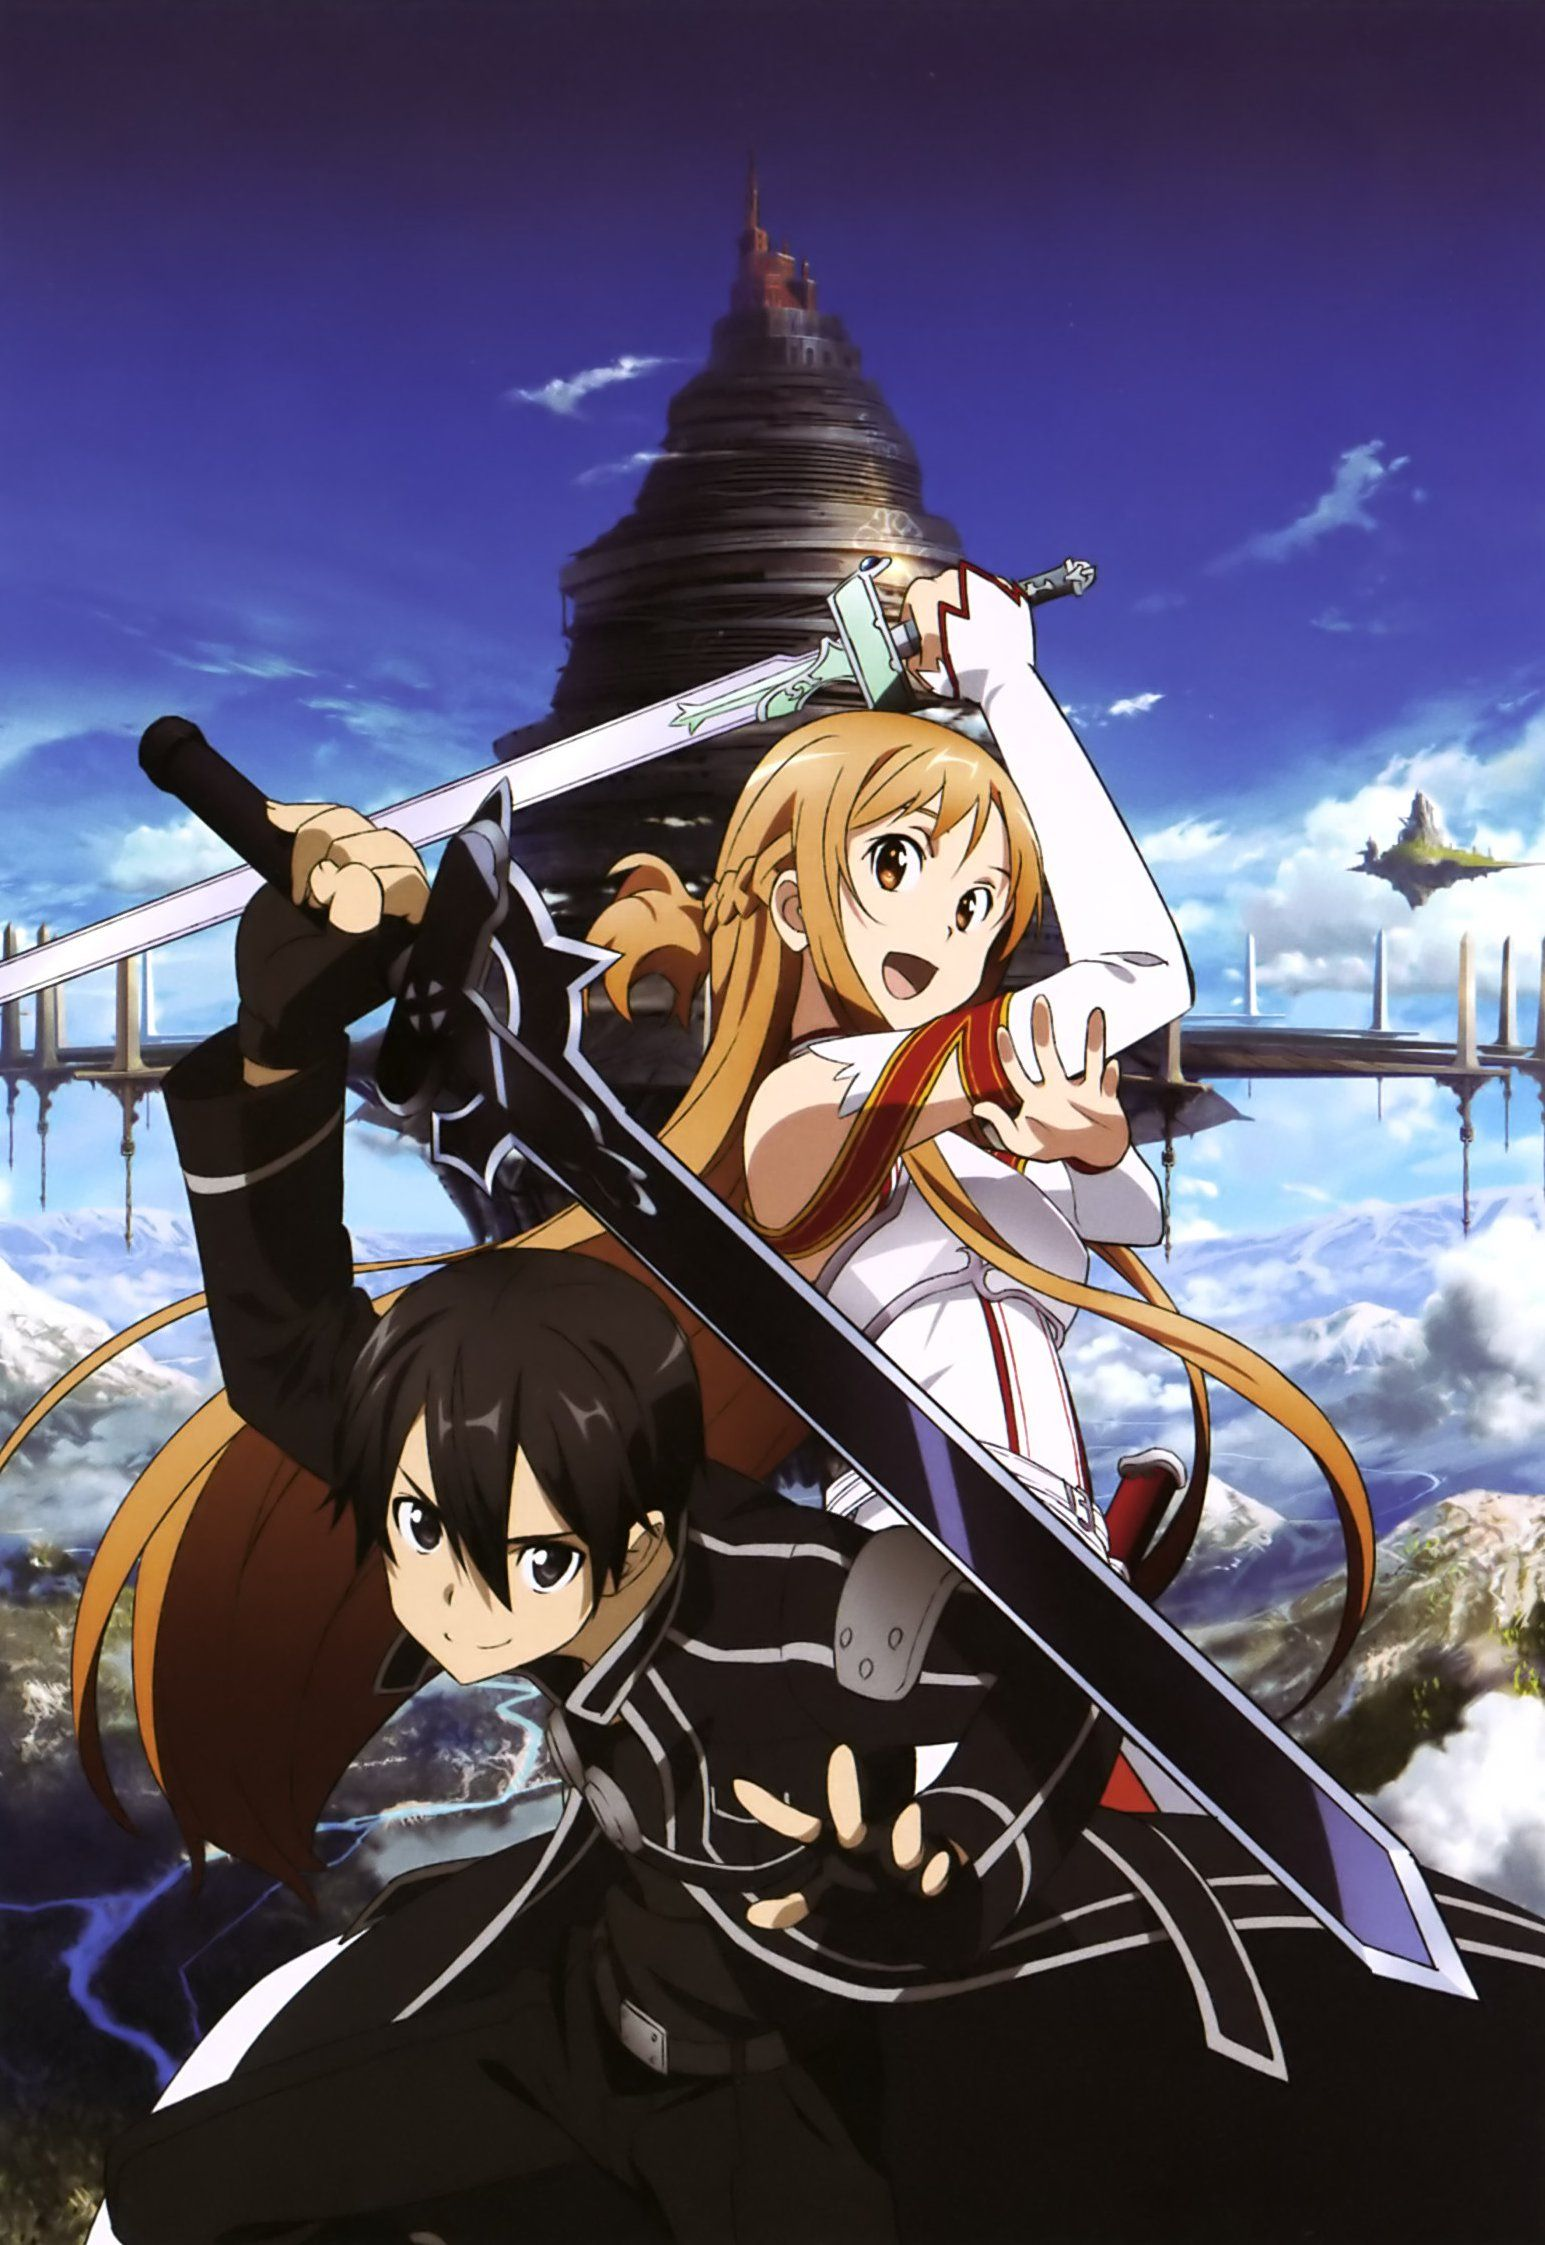 Sword Art Online, Kirito + Asuna, official art Anime